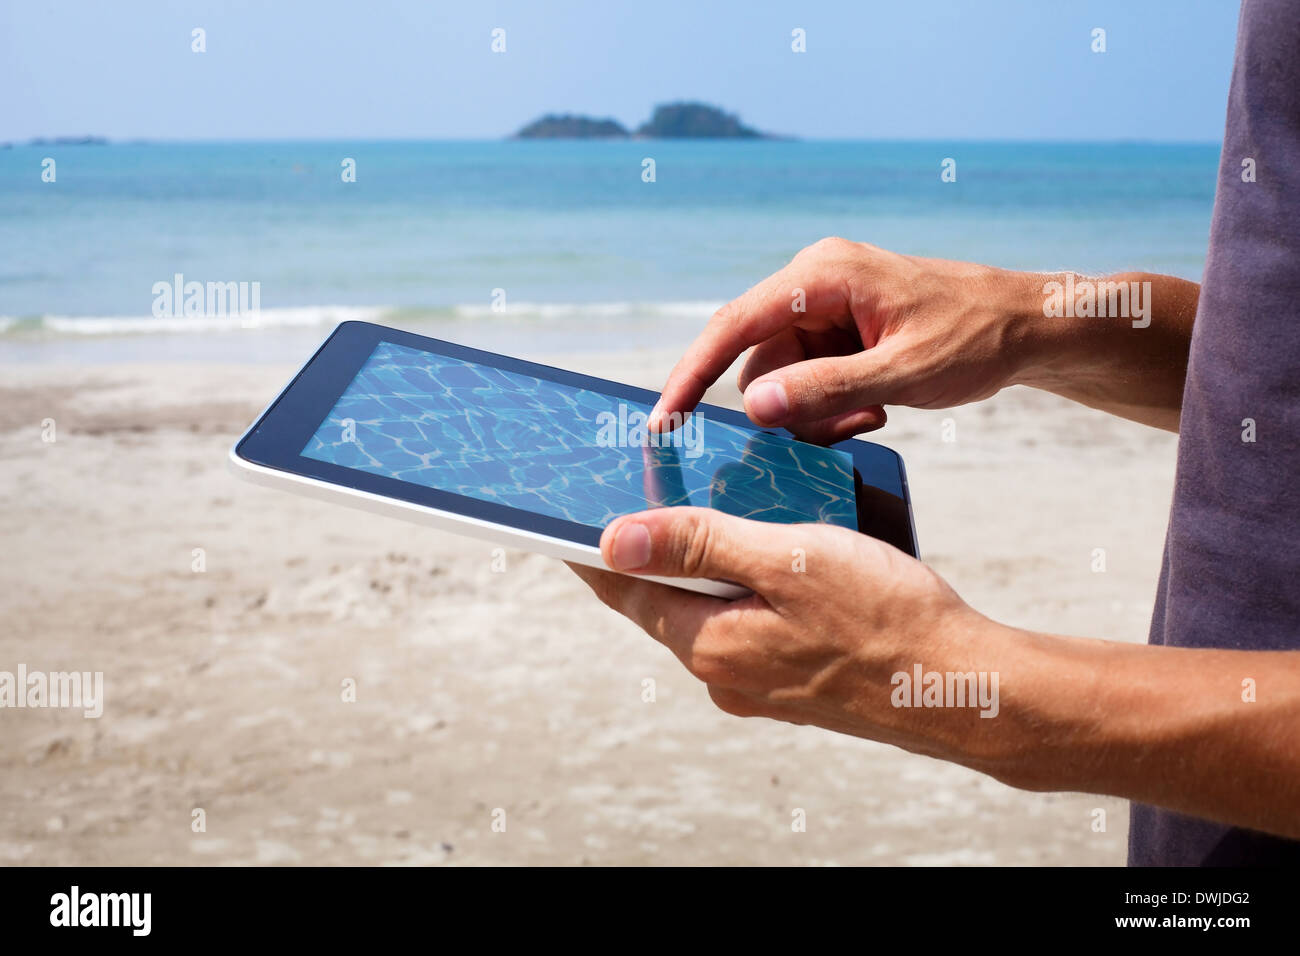 hands with tablet on the beach - Stock Image